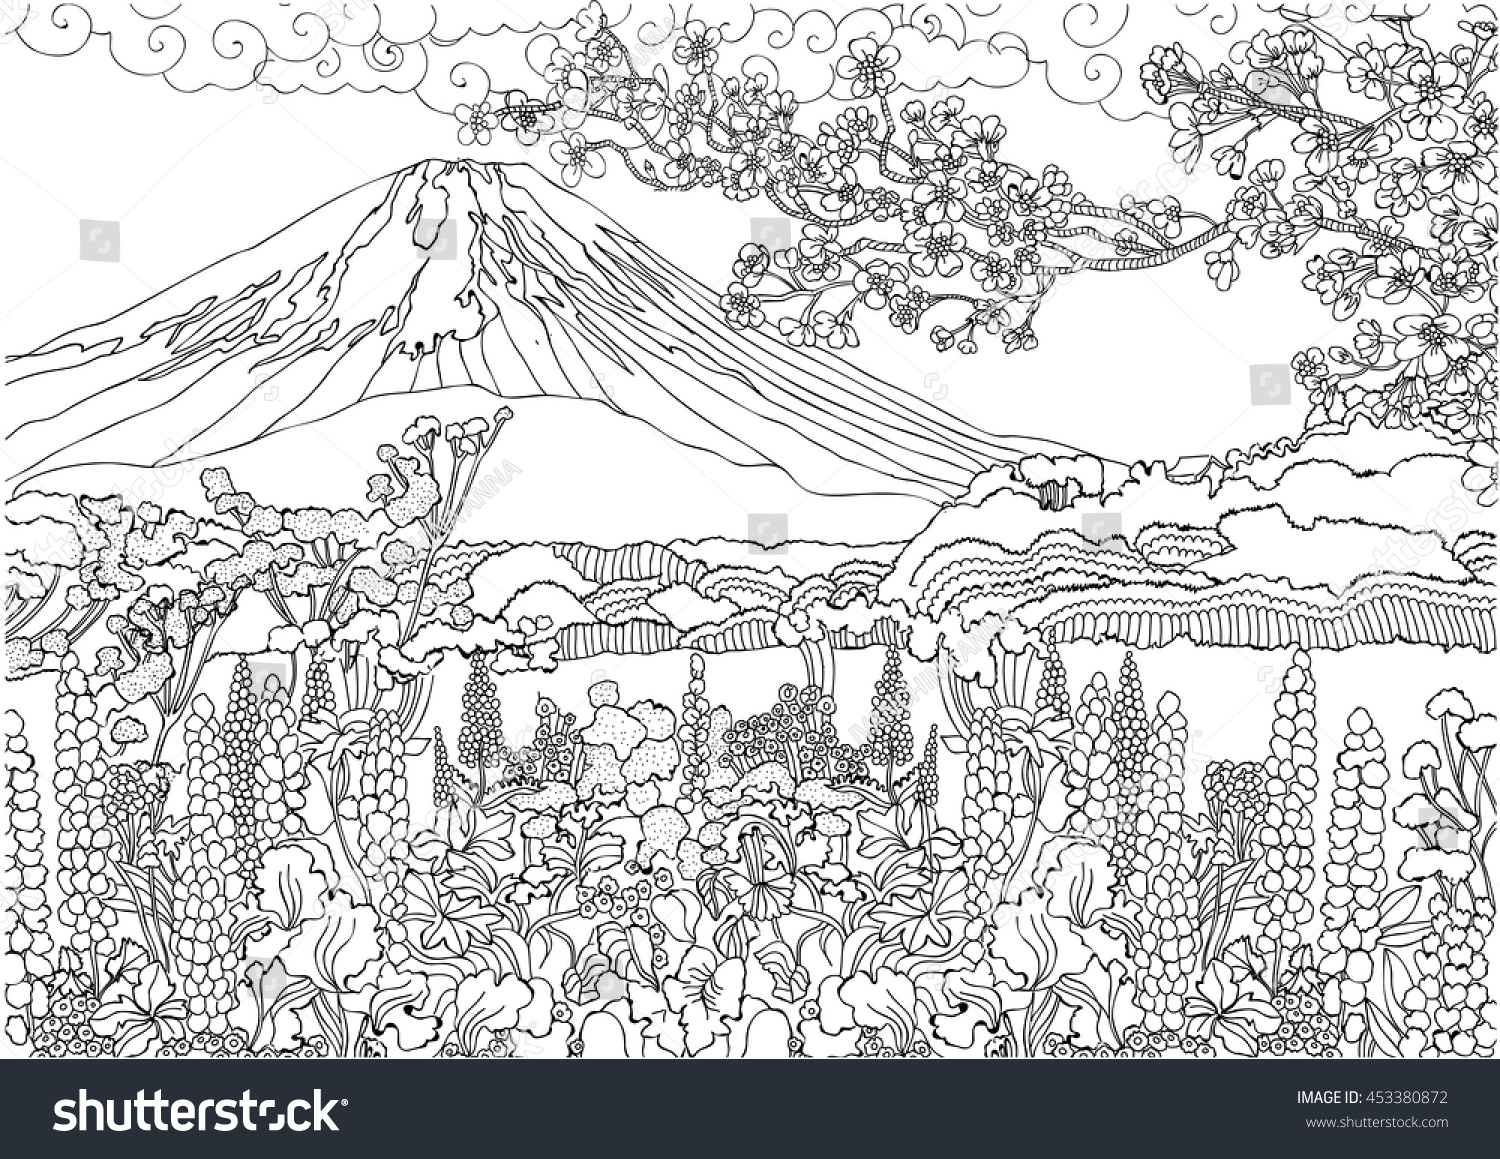 Mountain Japan Fujiyama Landscape Coloring Pages Stock Vector